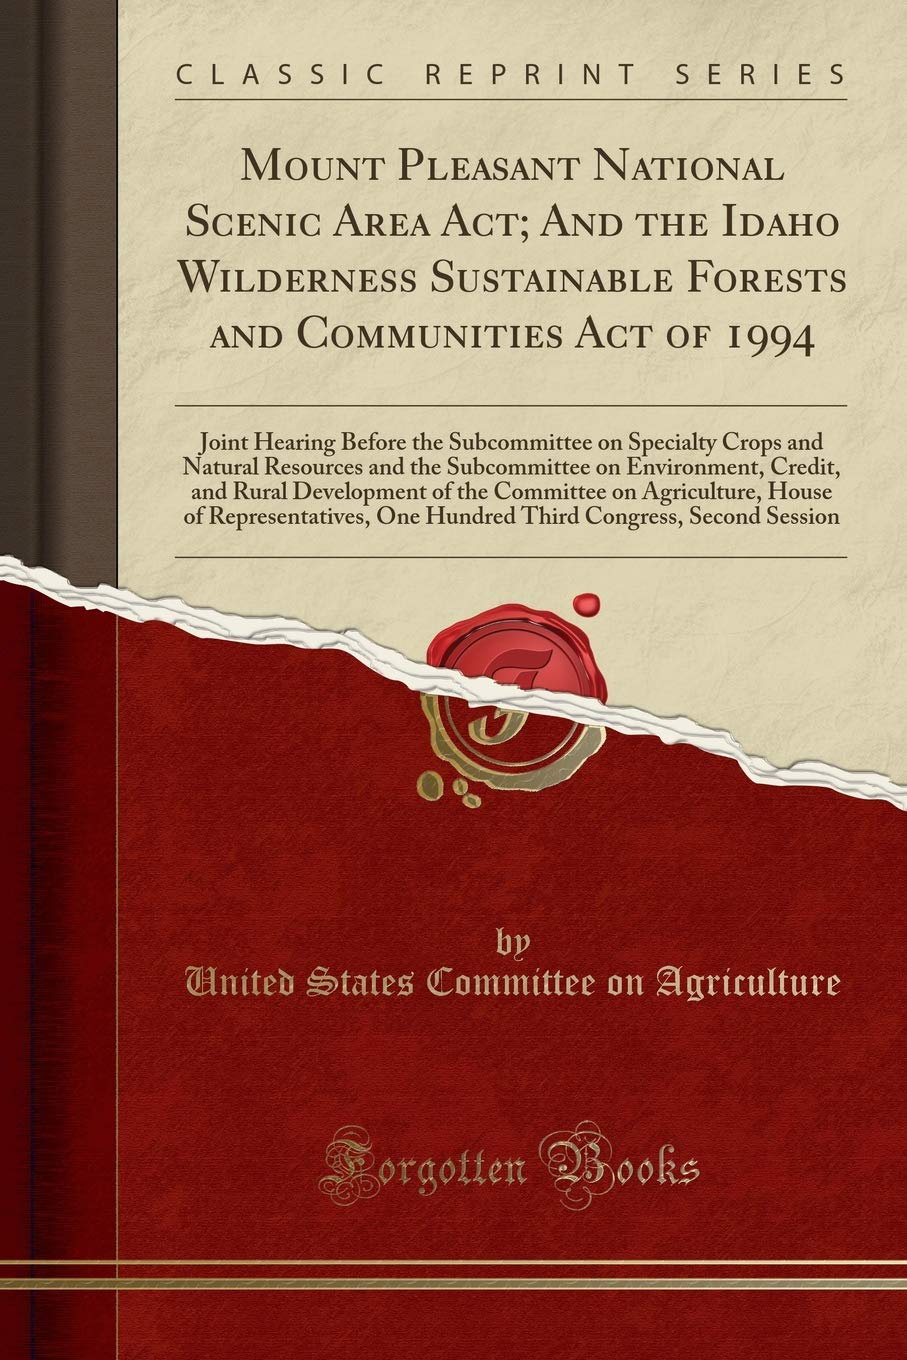 Download Mount Pleasant National Scenic Area Act; And the Idaho Wilderness Sustainable Forests and Communities Act of 1994: Joint Hearing Before the ... on Environment, Credit, and Rural Develo ebook